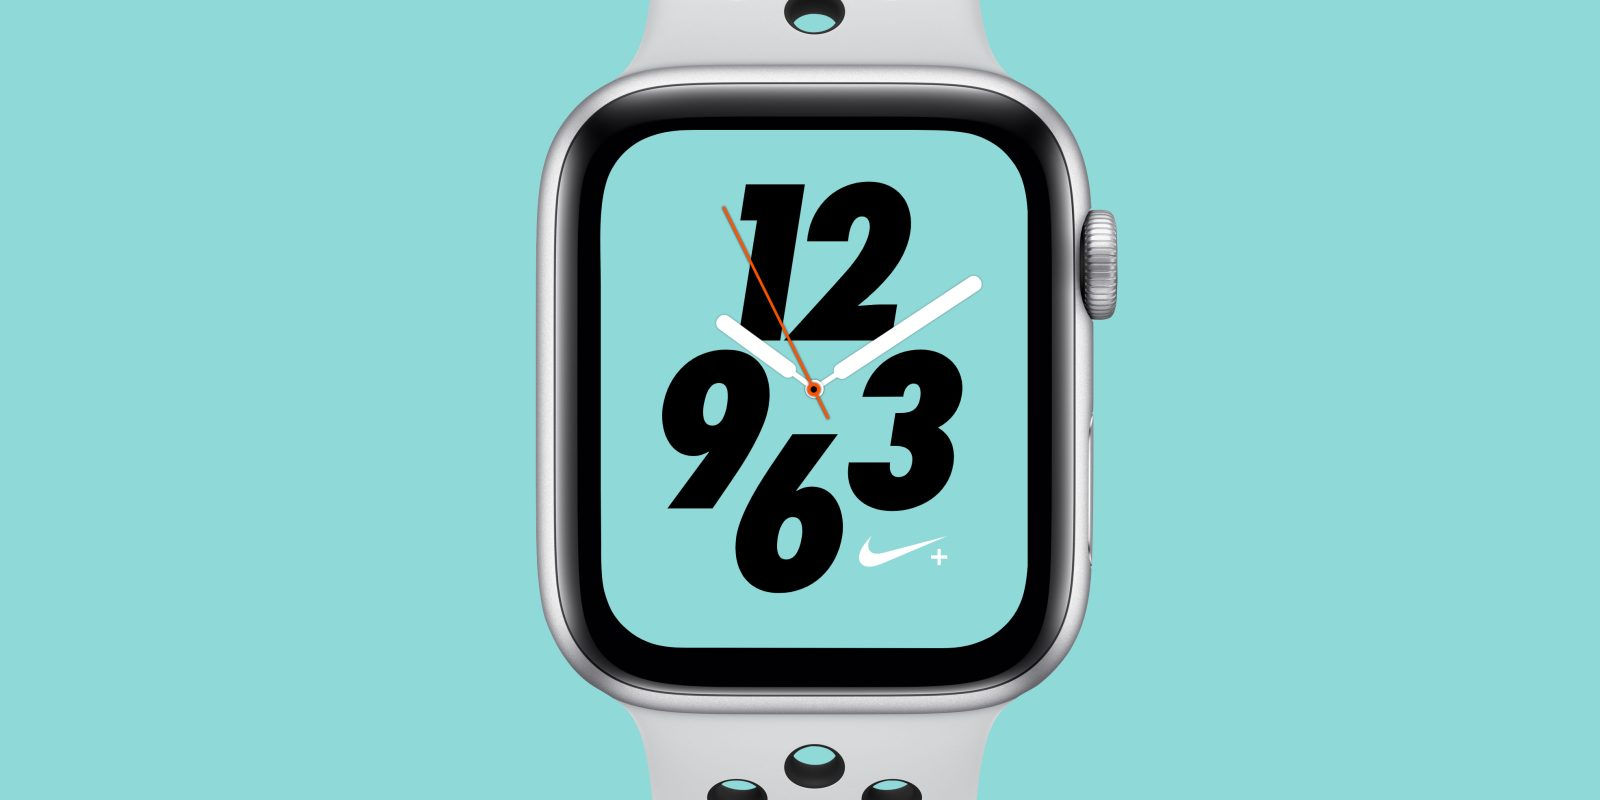 Apple Watch Nike+ Series 4 models discounted by $100 in various configs